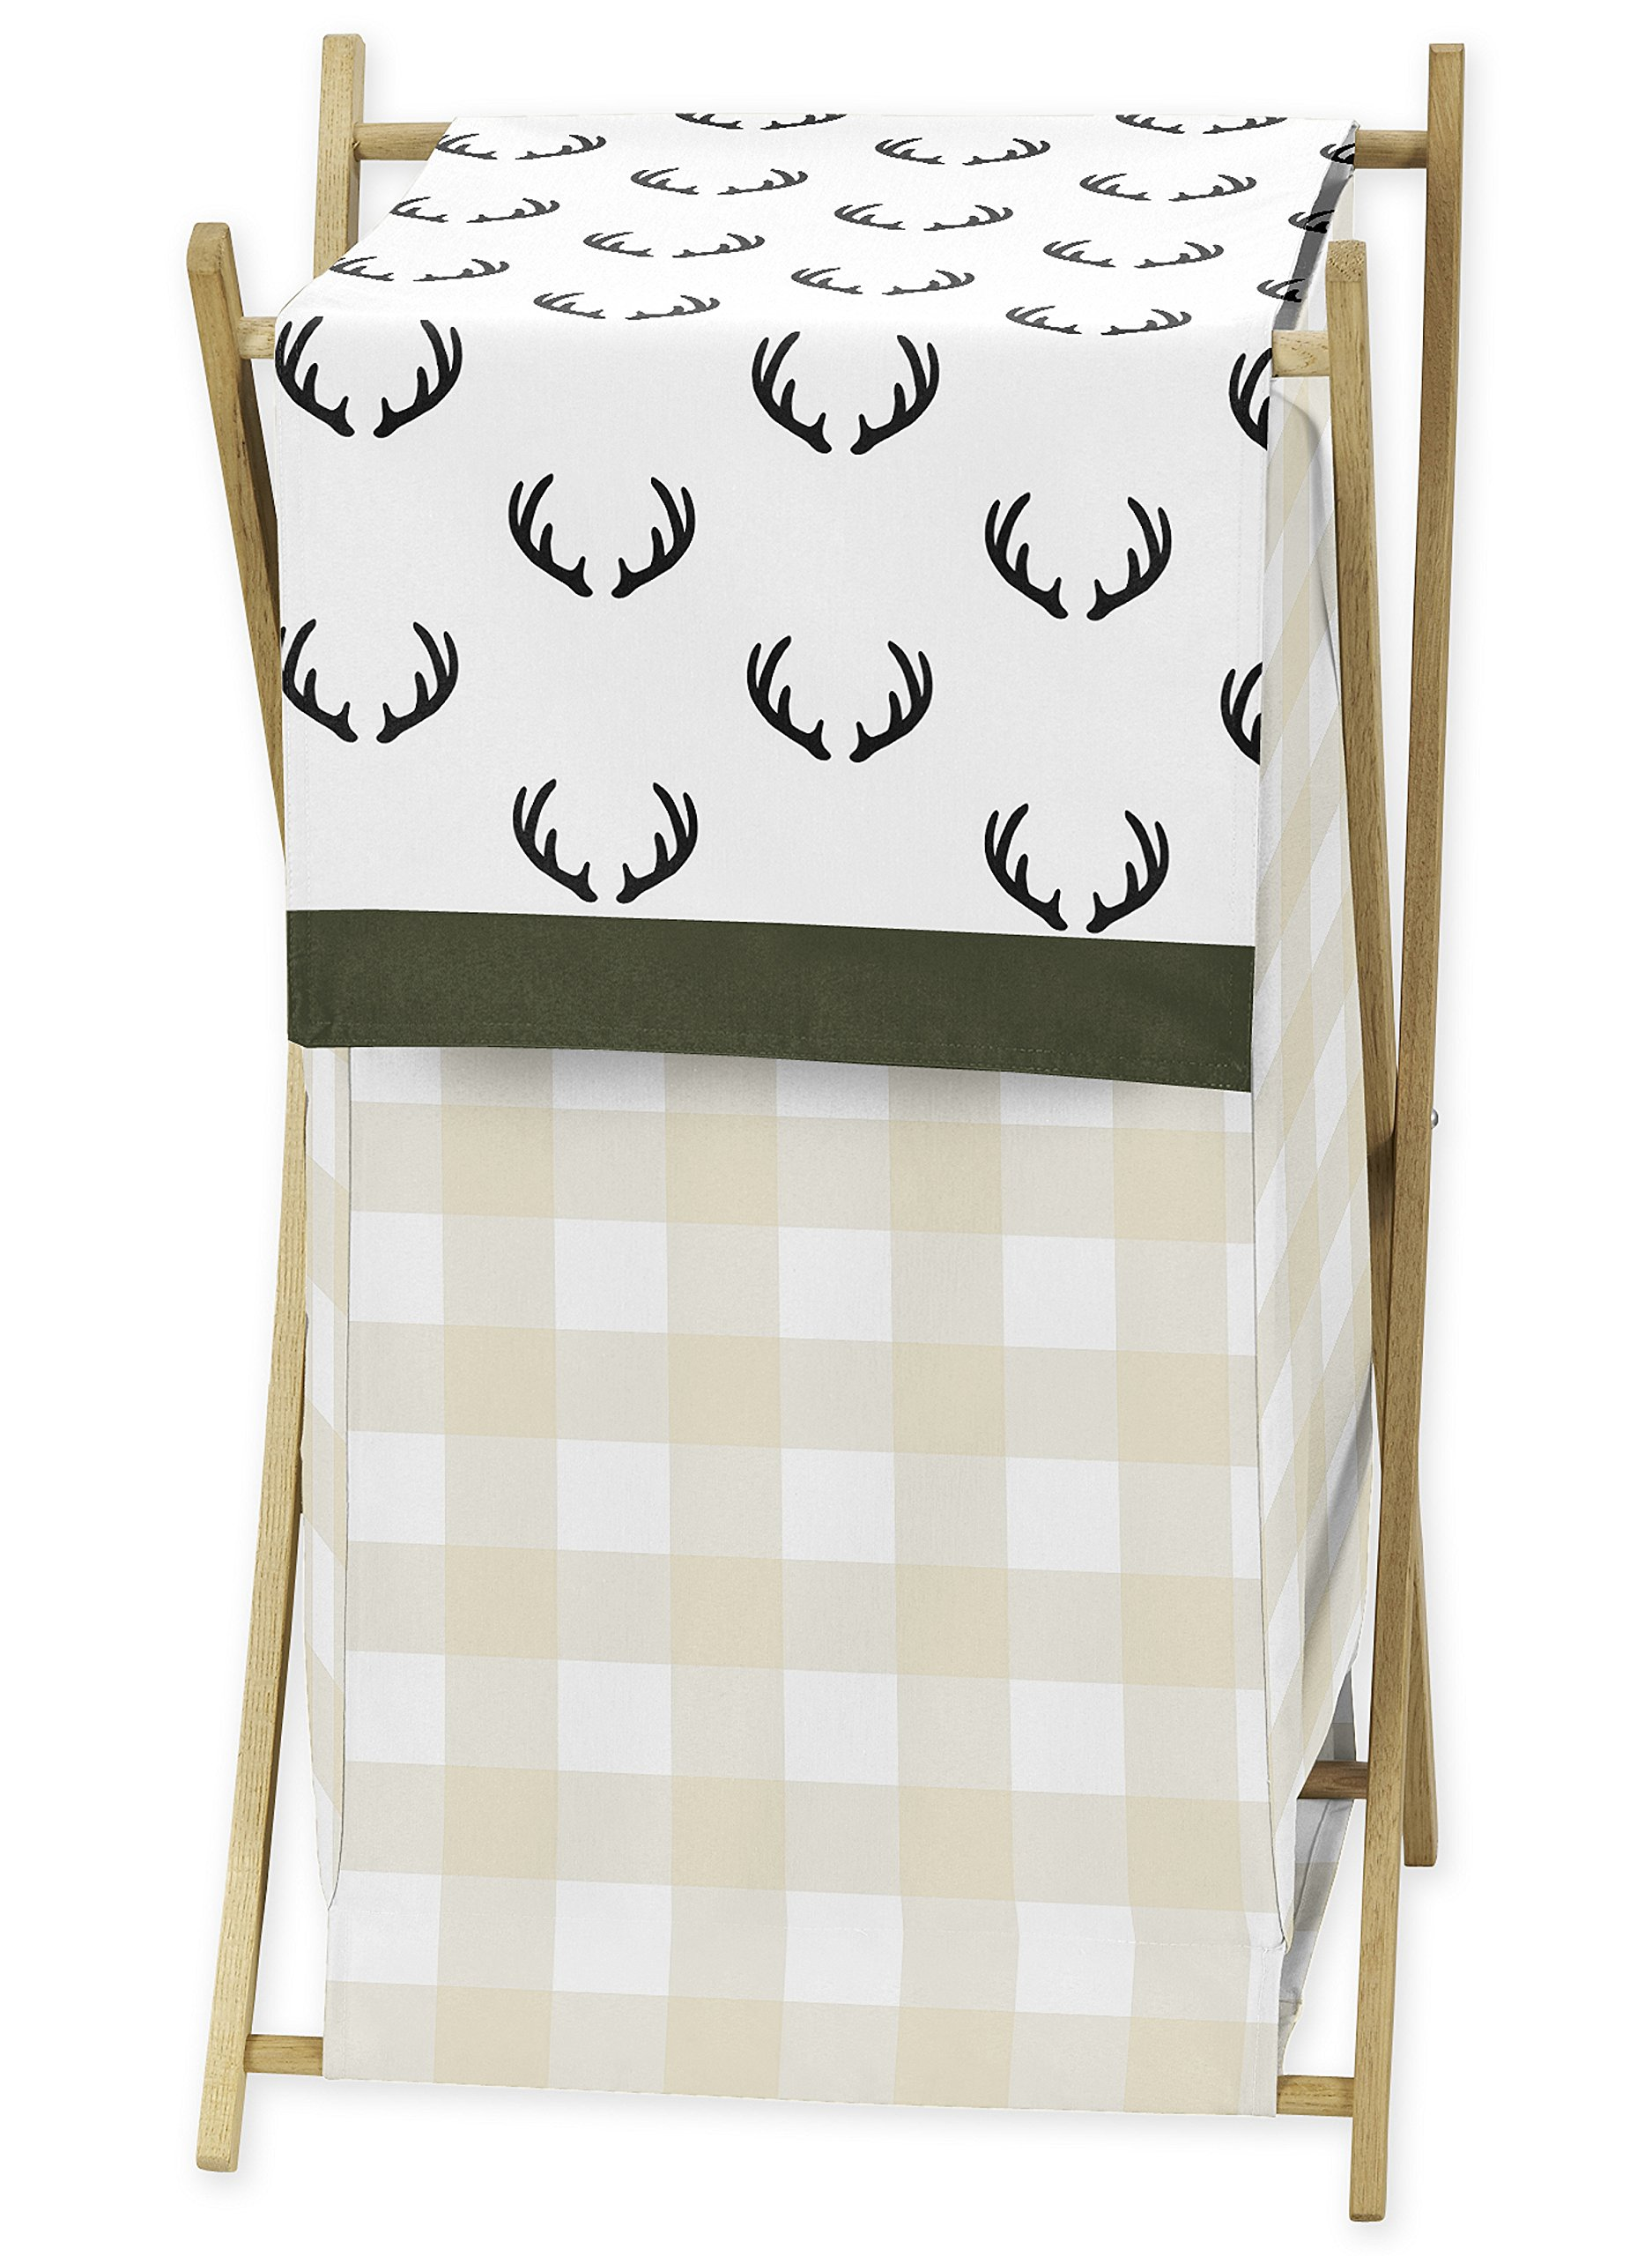 Sweet JoJo Designs Green and Beige Rustic Deer Buffalo Plaid Check Baby Kid Clothes Laundry Hamper for Woodland Camo Collection